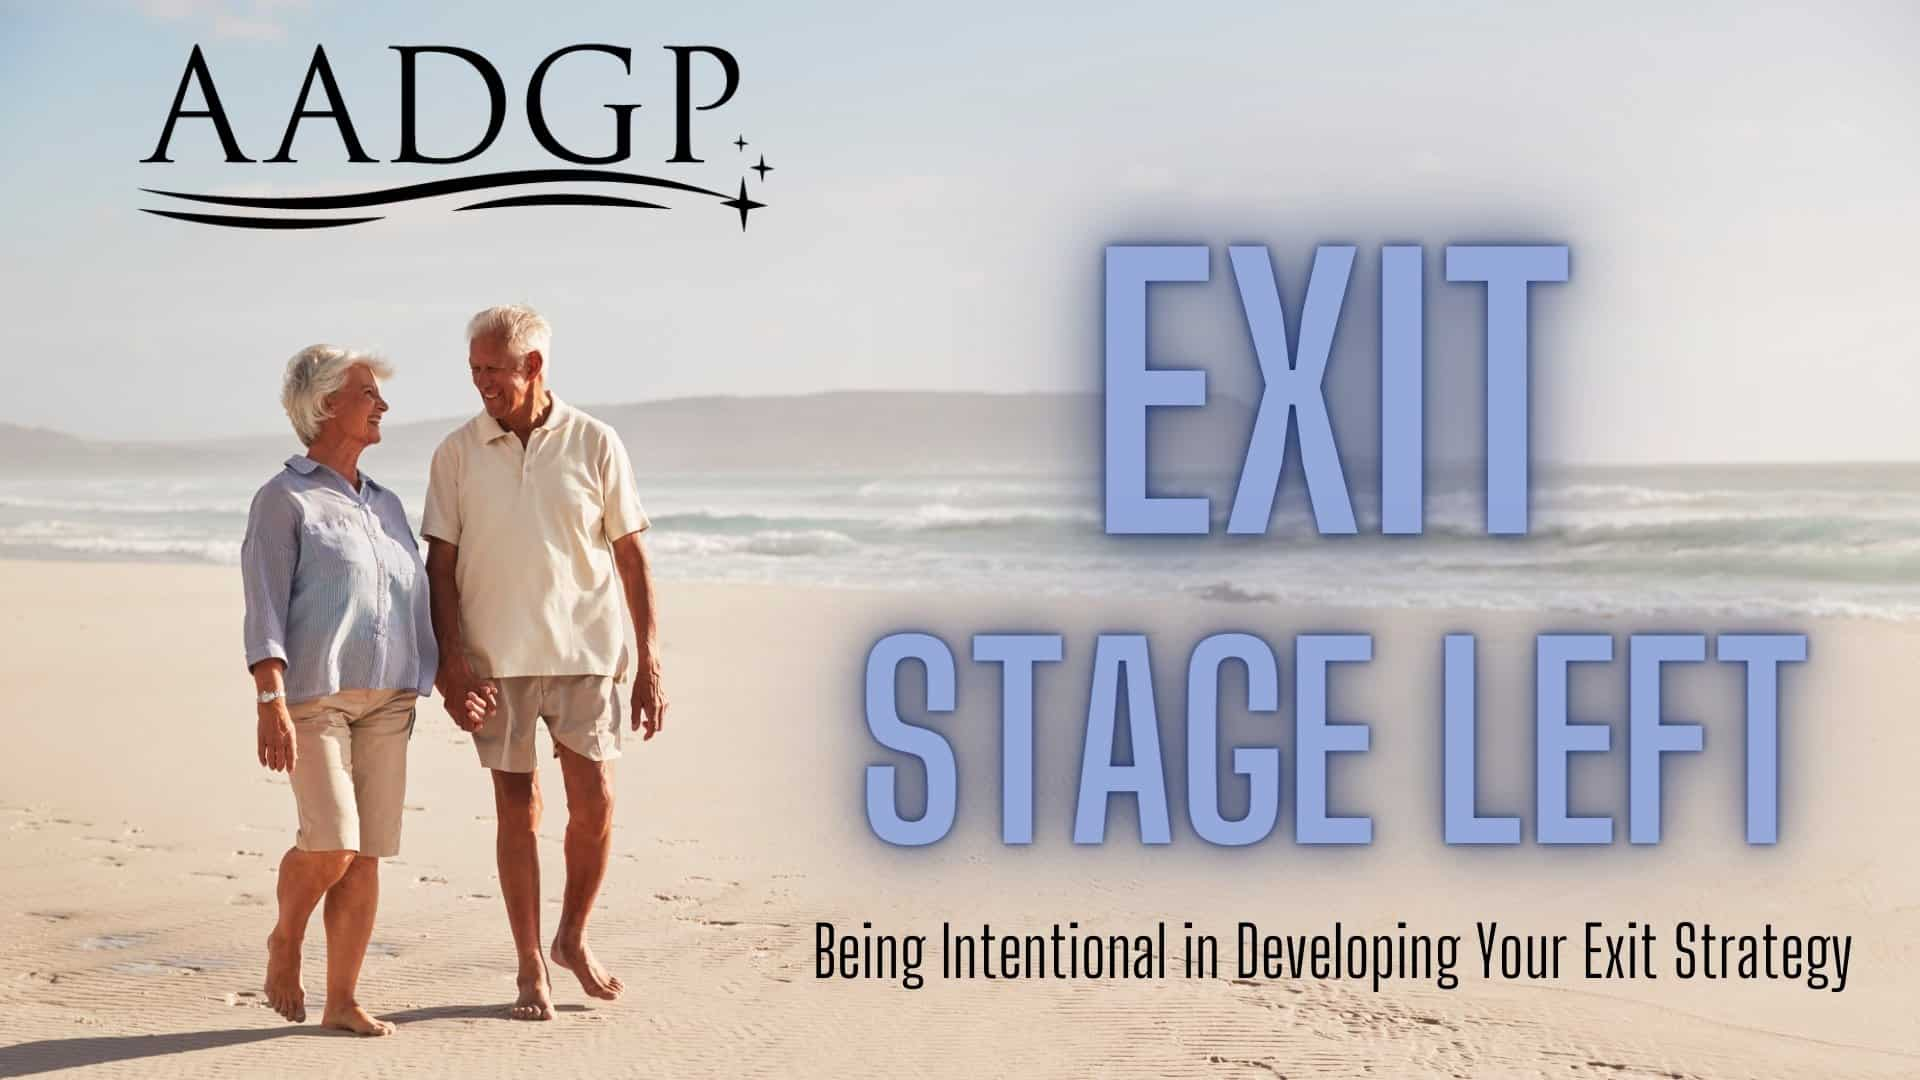 Exit Stage Left: Being Intentional in Developing Your Exit Strategy